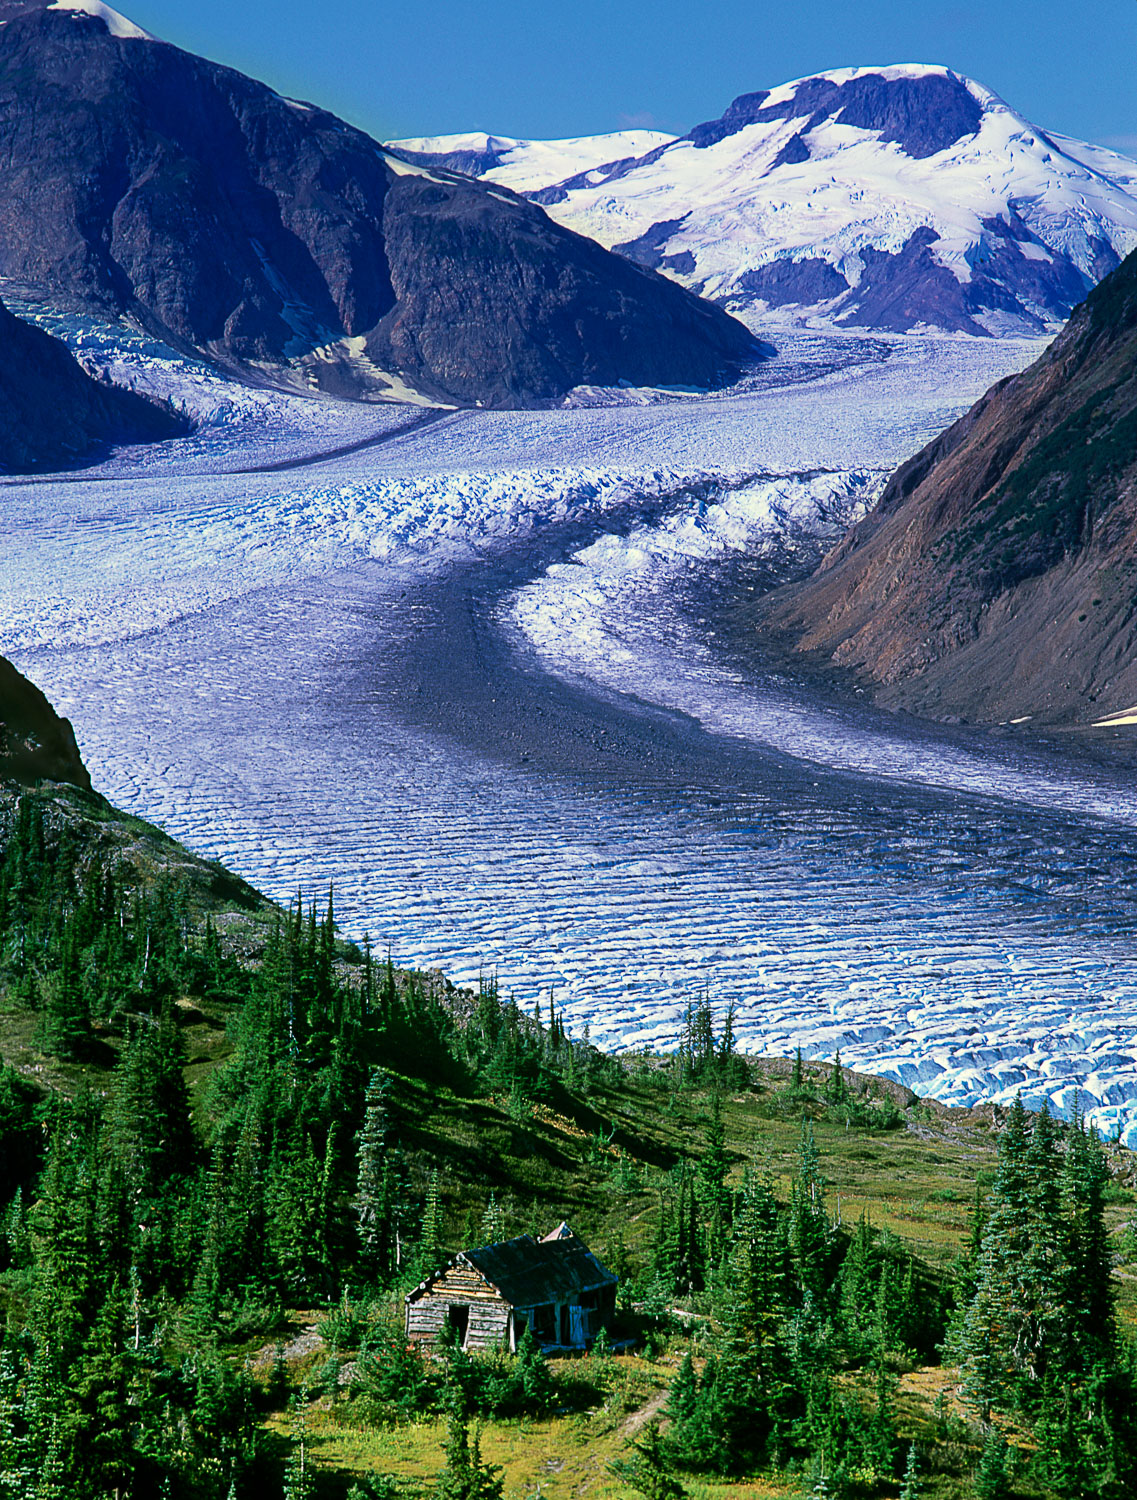 """Miners Cabin and Salmon Glacier"" near Stewart, British Columbia"